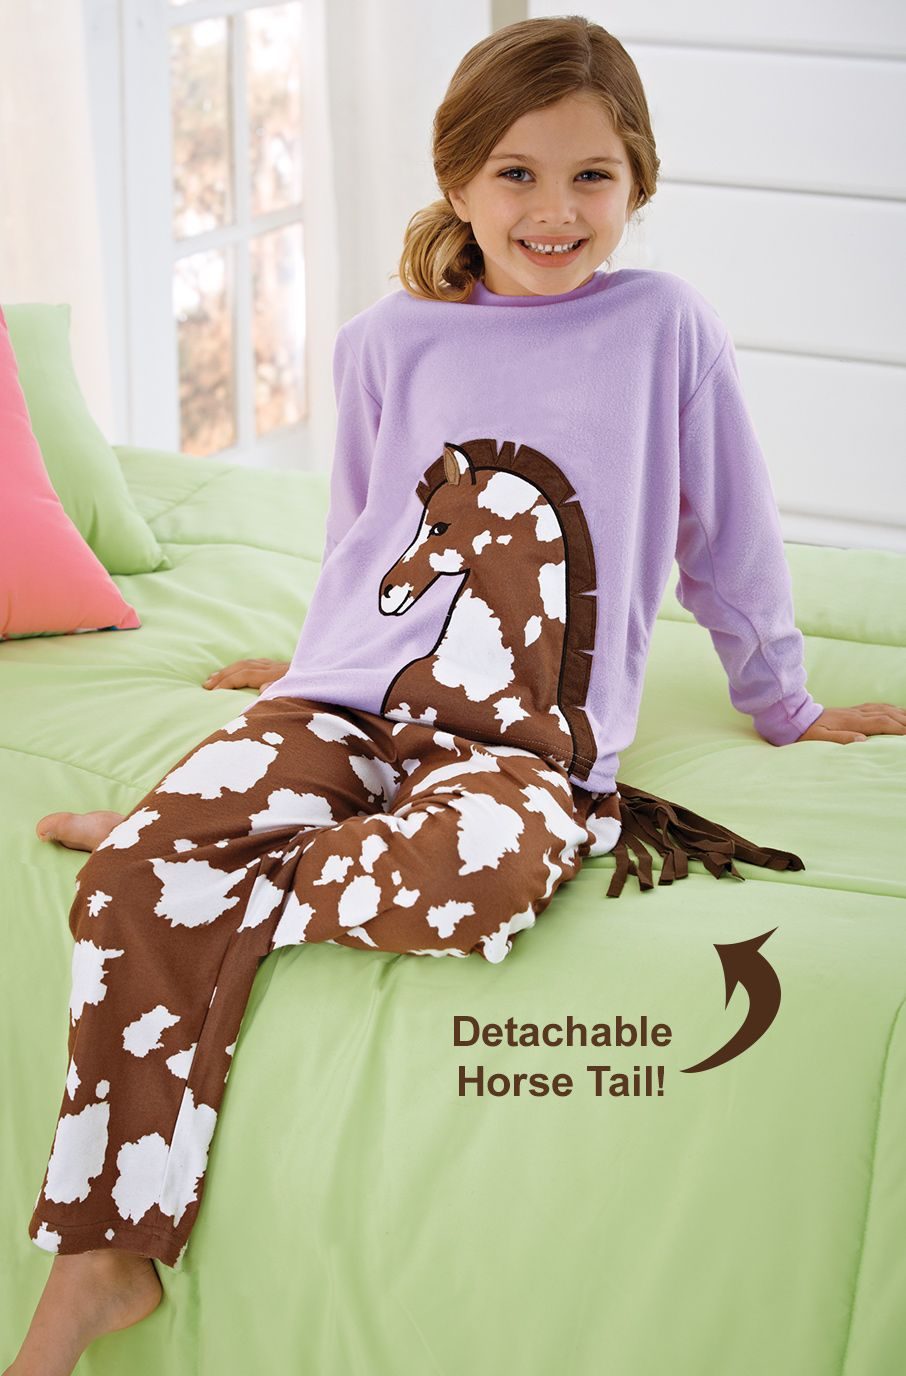 52adad56ea32 From CWDkids  Horse Pajamas with Detachable Tail - She wants the ...